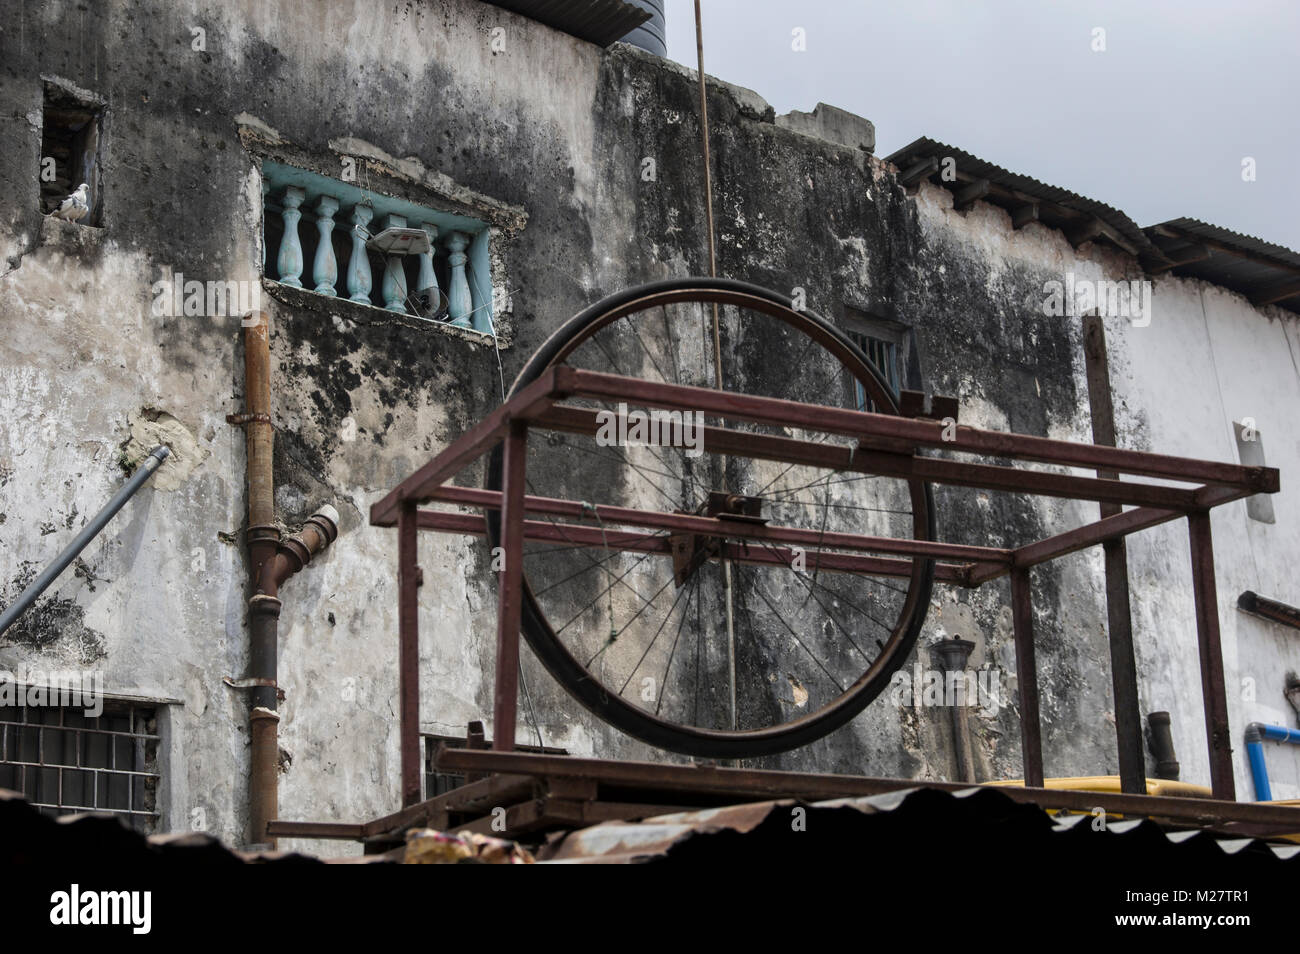 old bicycle wheel mounted on a rusty steel structure of unknown use, perhaps a knife sharpener - Stock Image